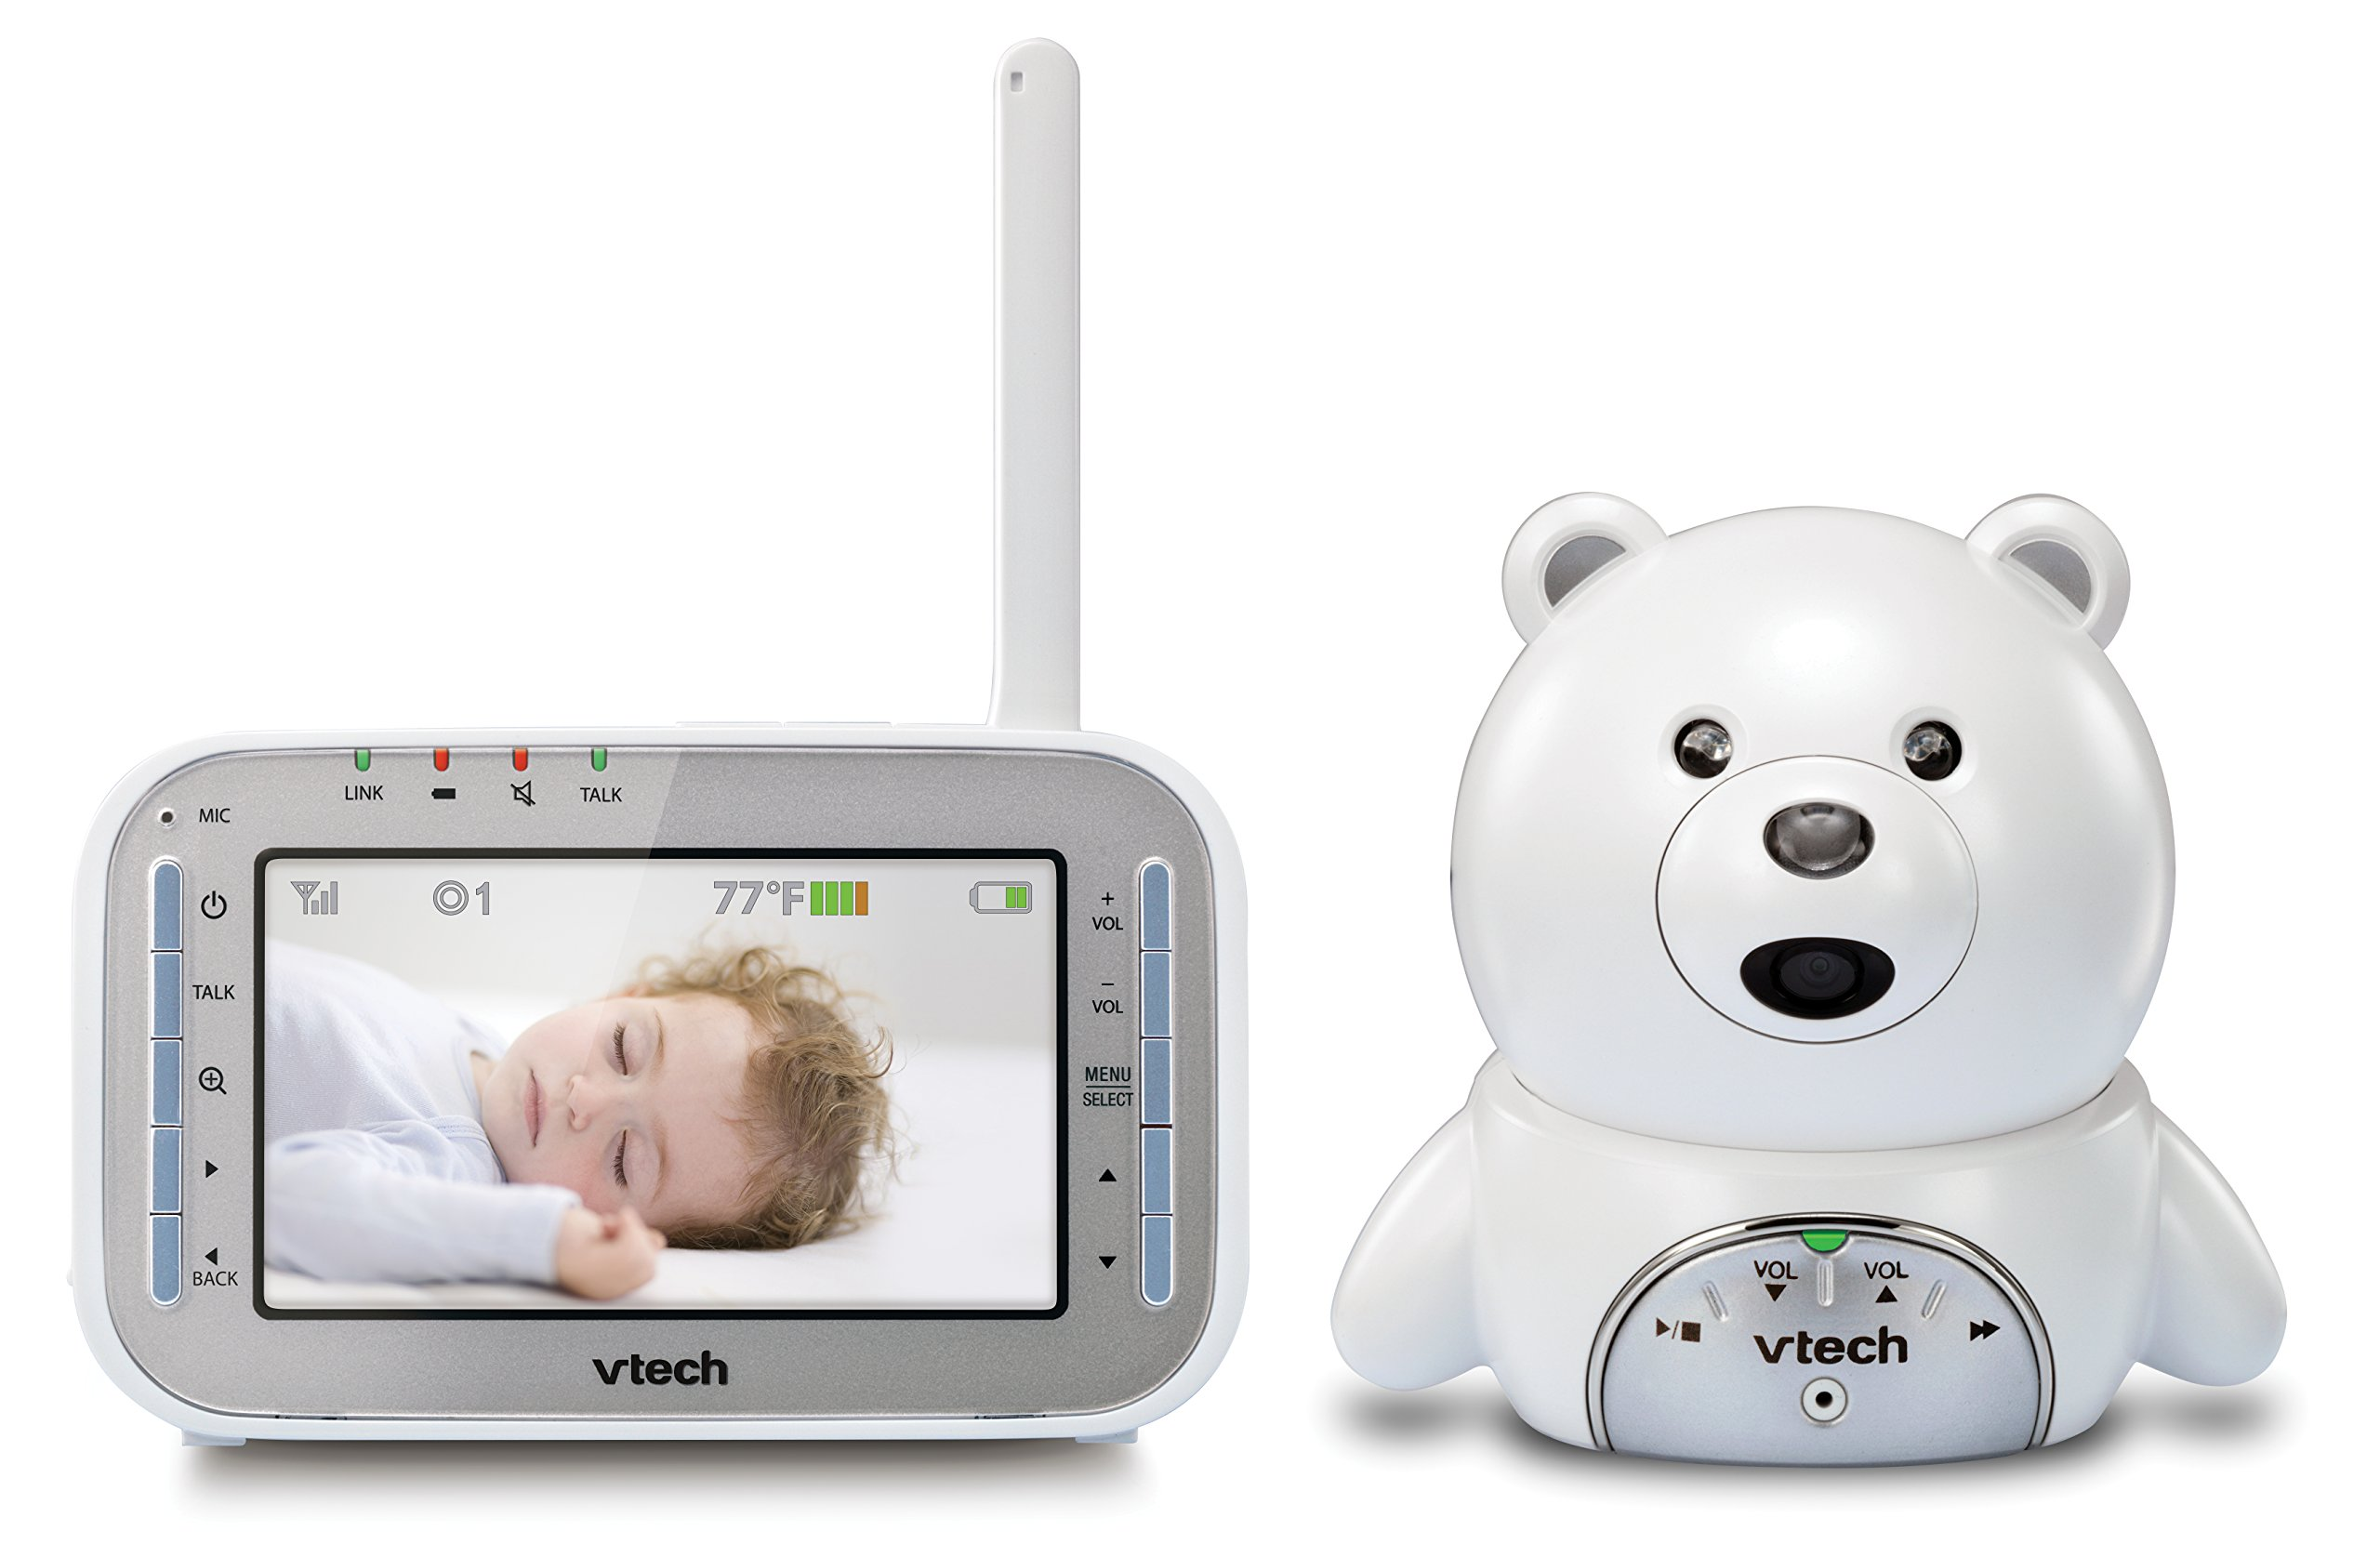 fd72fa9514e Amazon.com   VTech VM346 Bear Video Baby Monitor with Automatic Infrared  Night Vision, Soothing Sounds   Lullabies, Temperature Sensor   1, ...